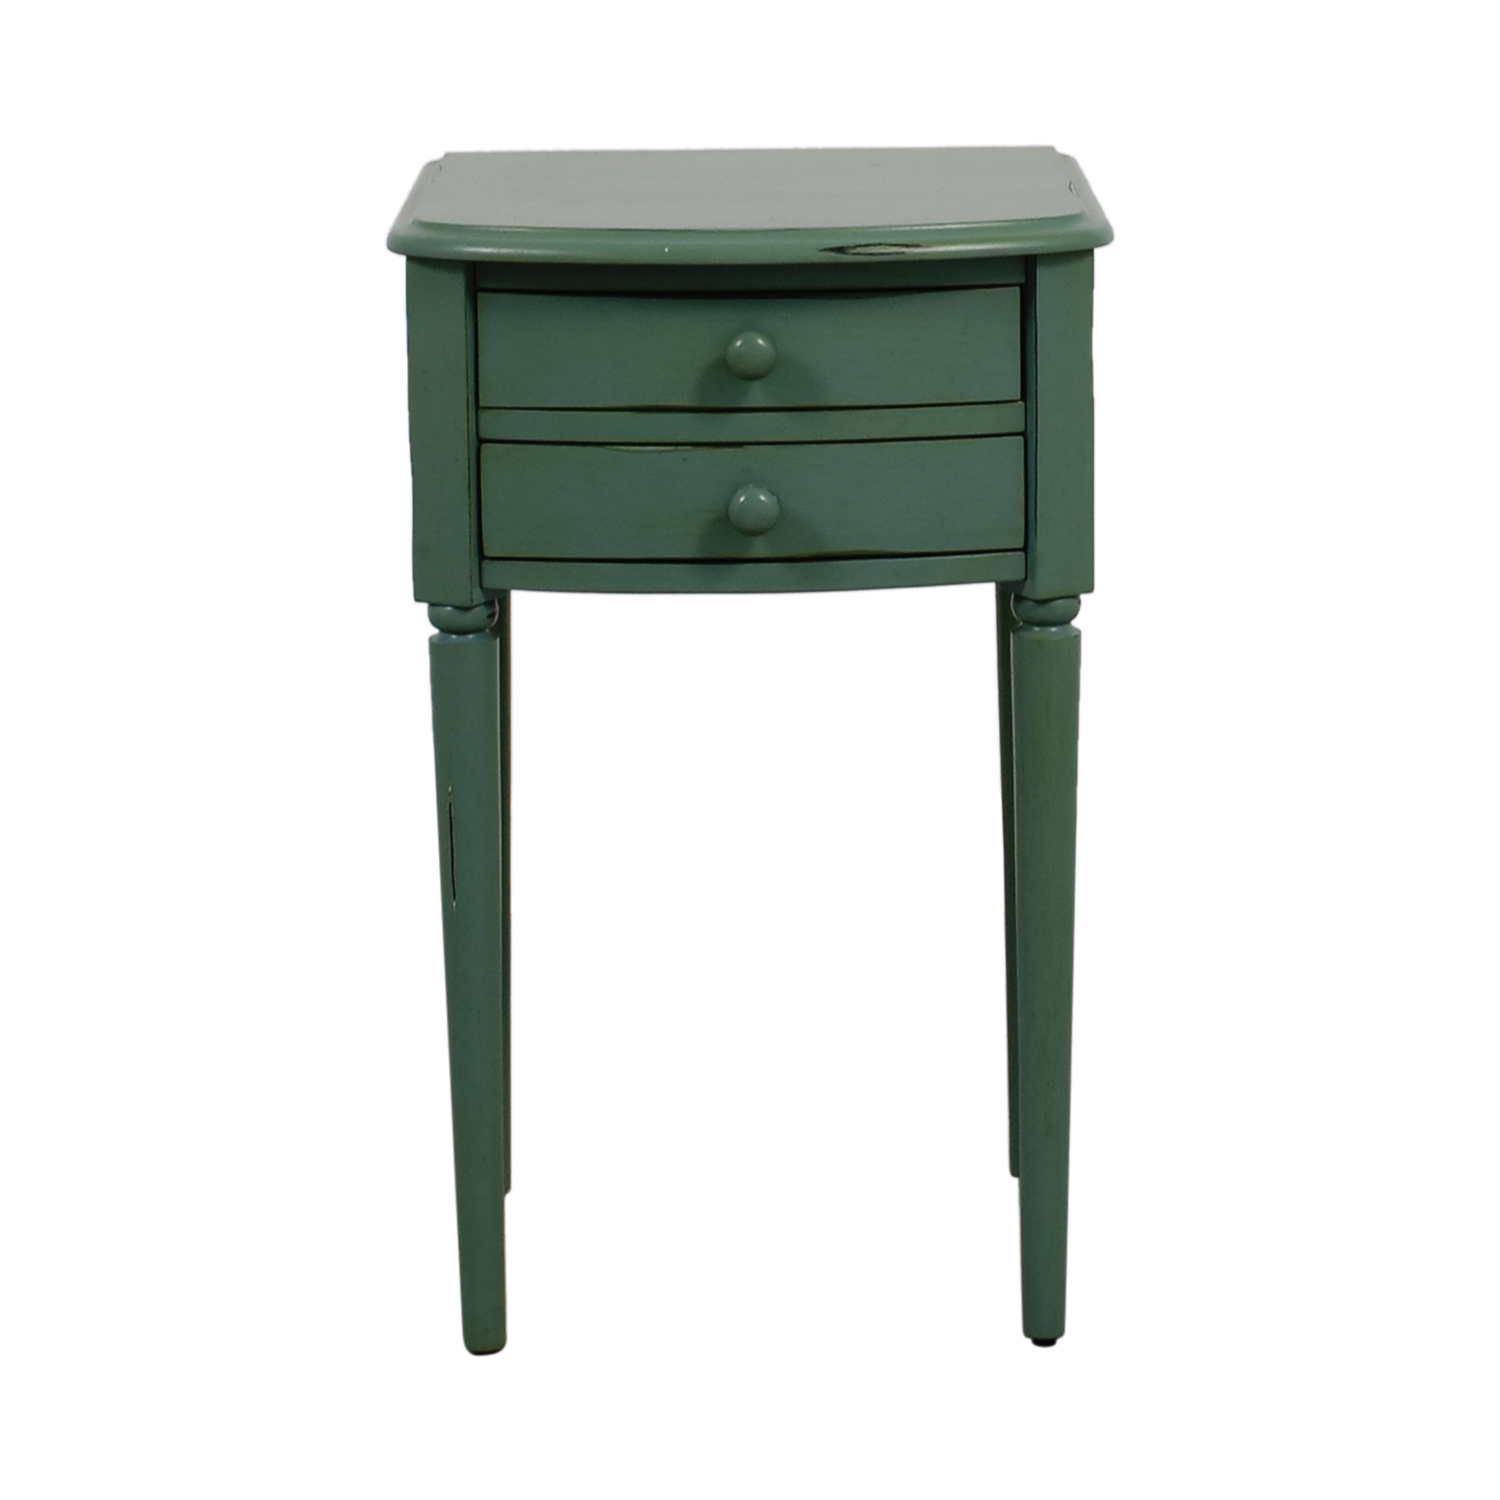 Pottery Barn Pottery Barn Vintage Seafoam Nightstand on sale